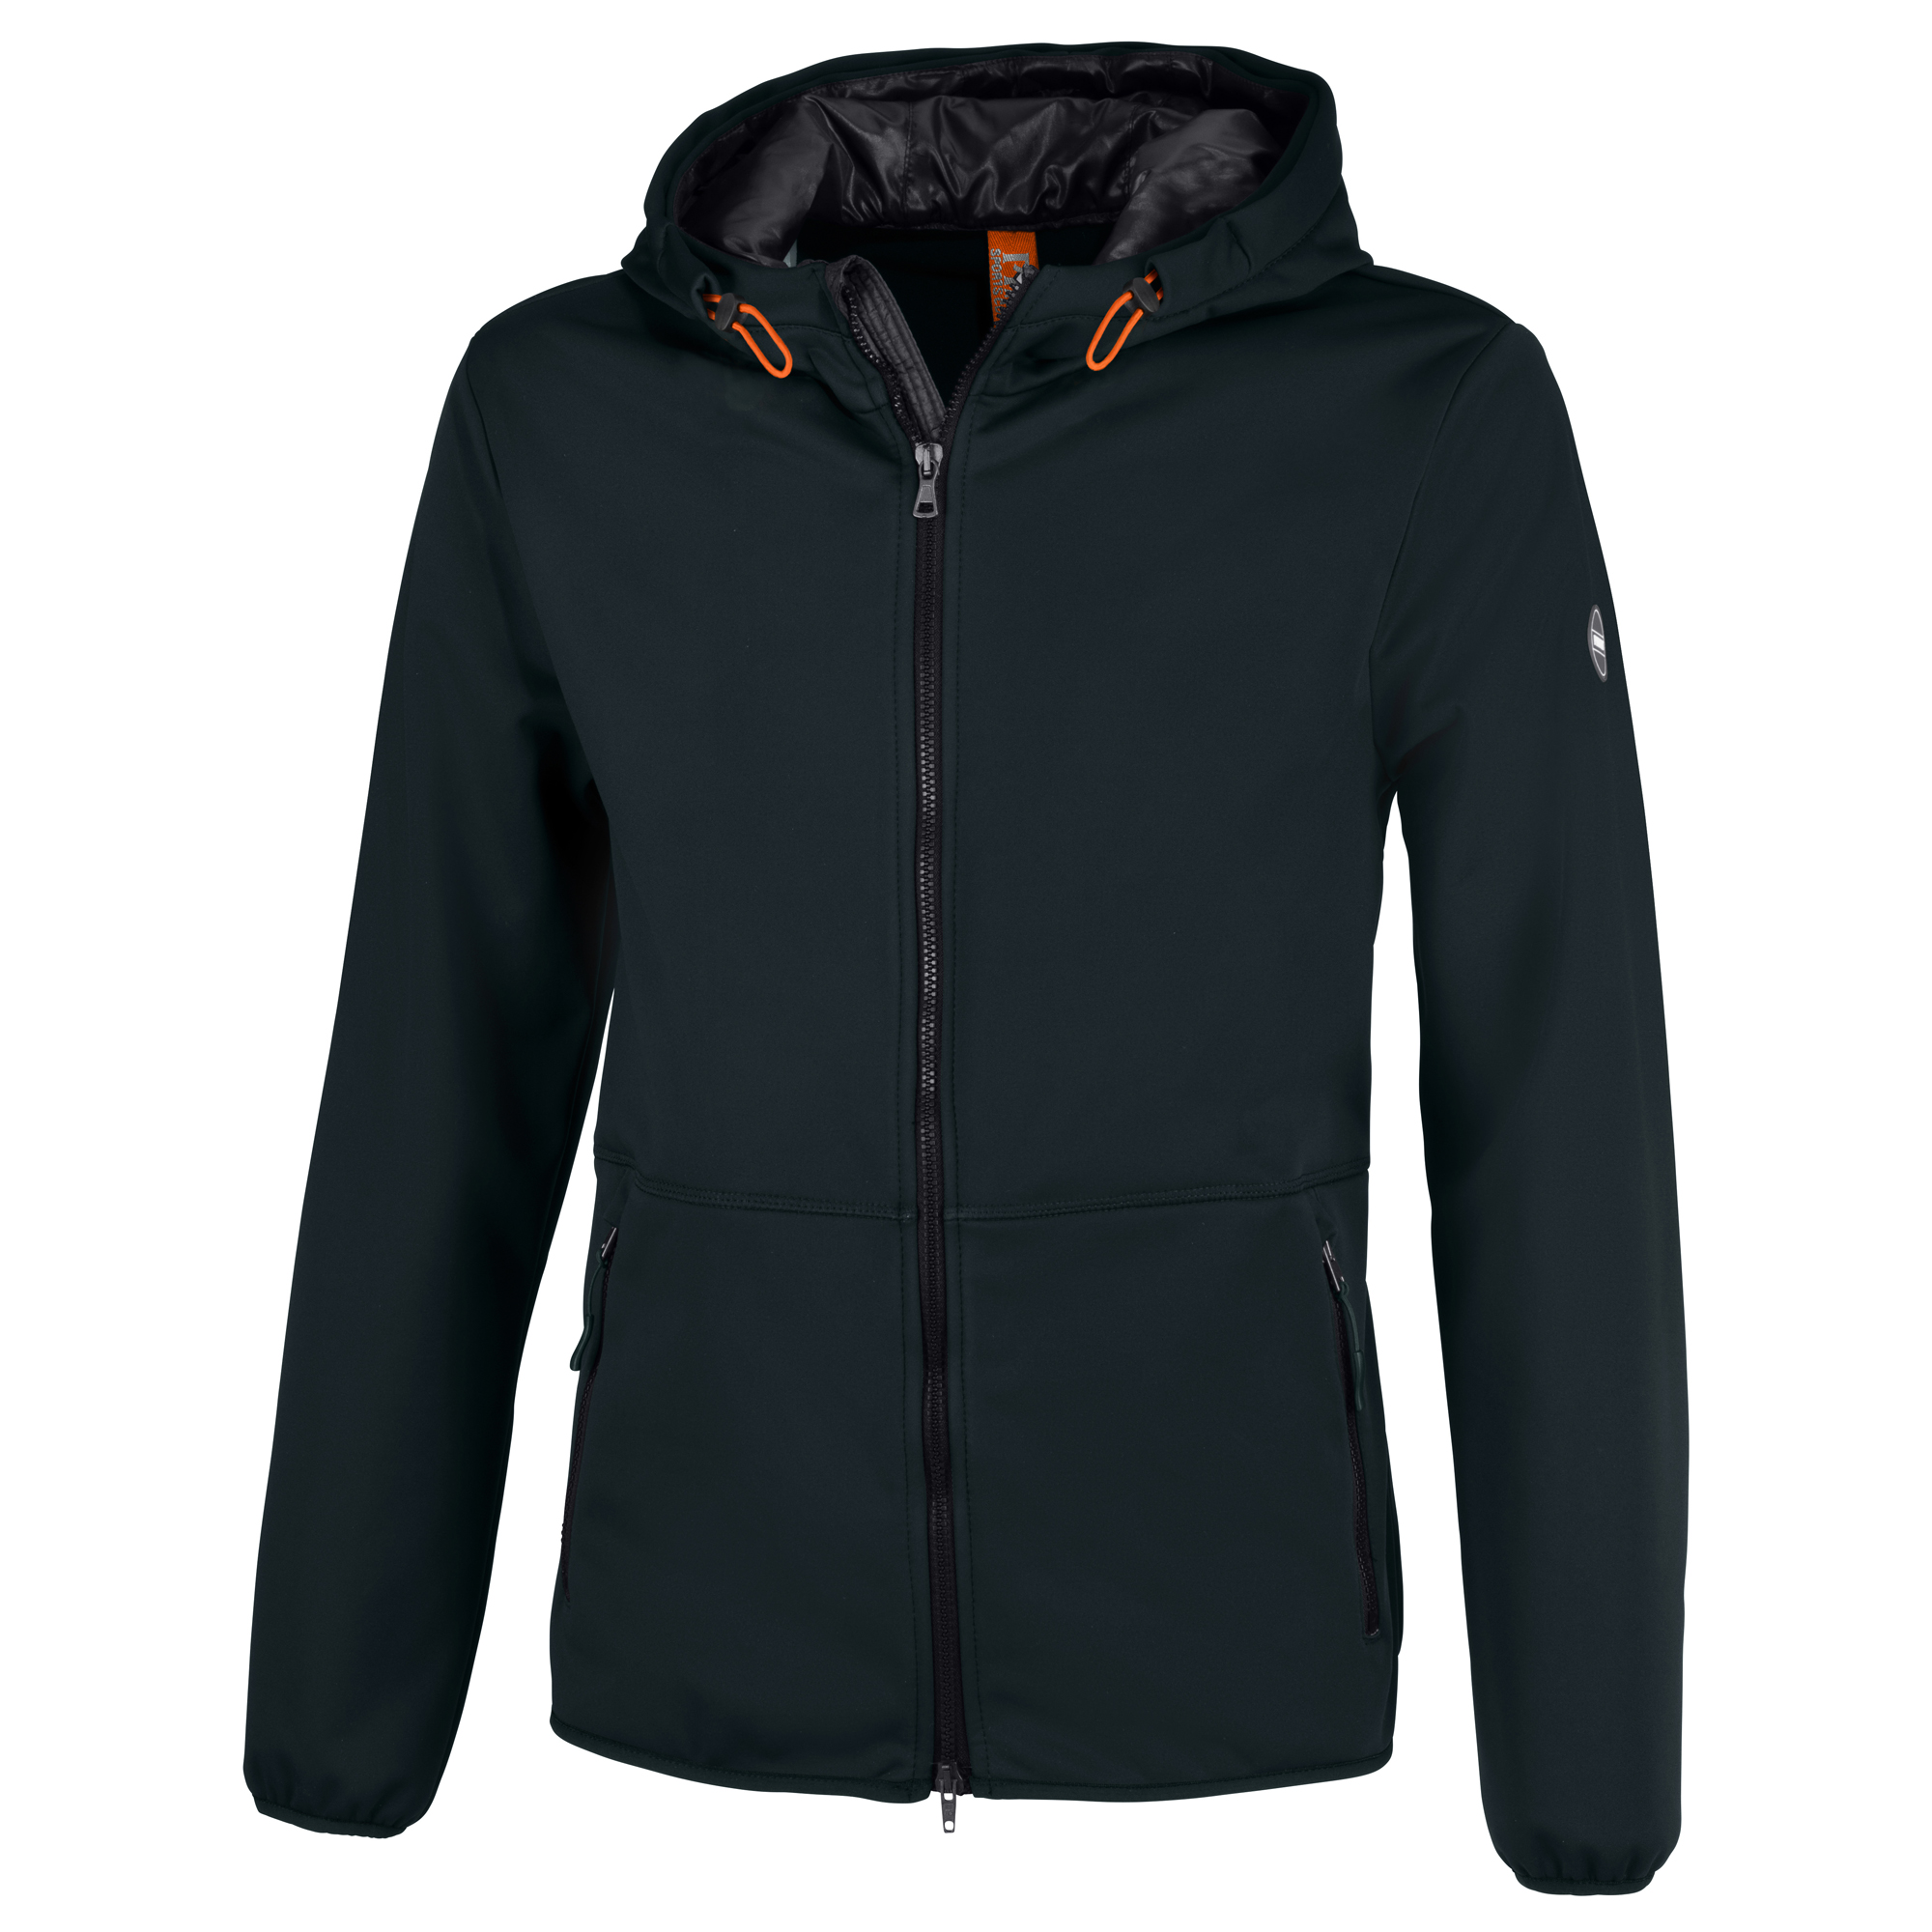 Pikeur Herren Softshelljacke MITCHEL in dark green